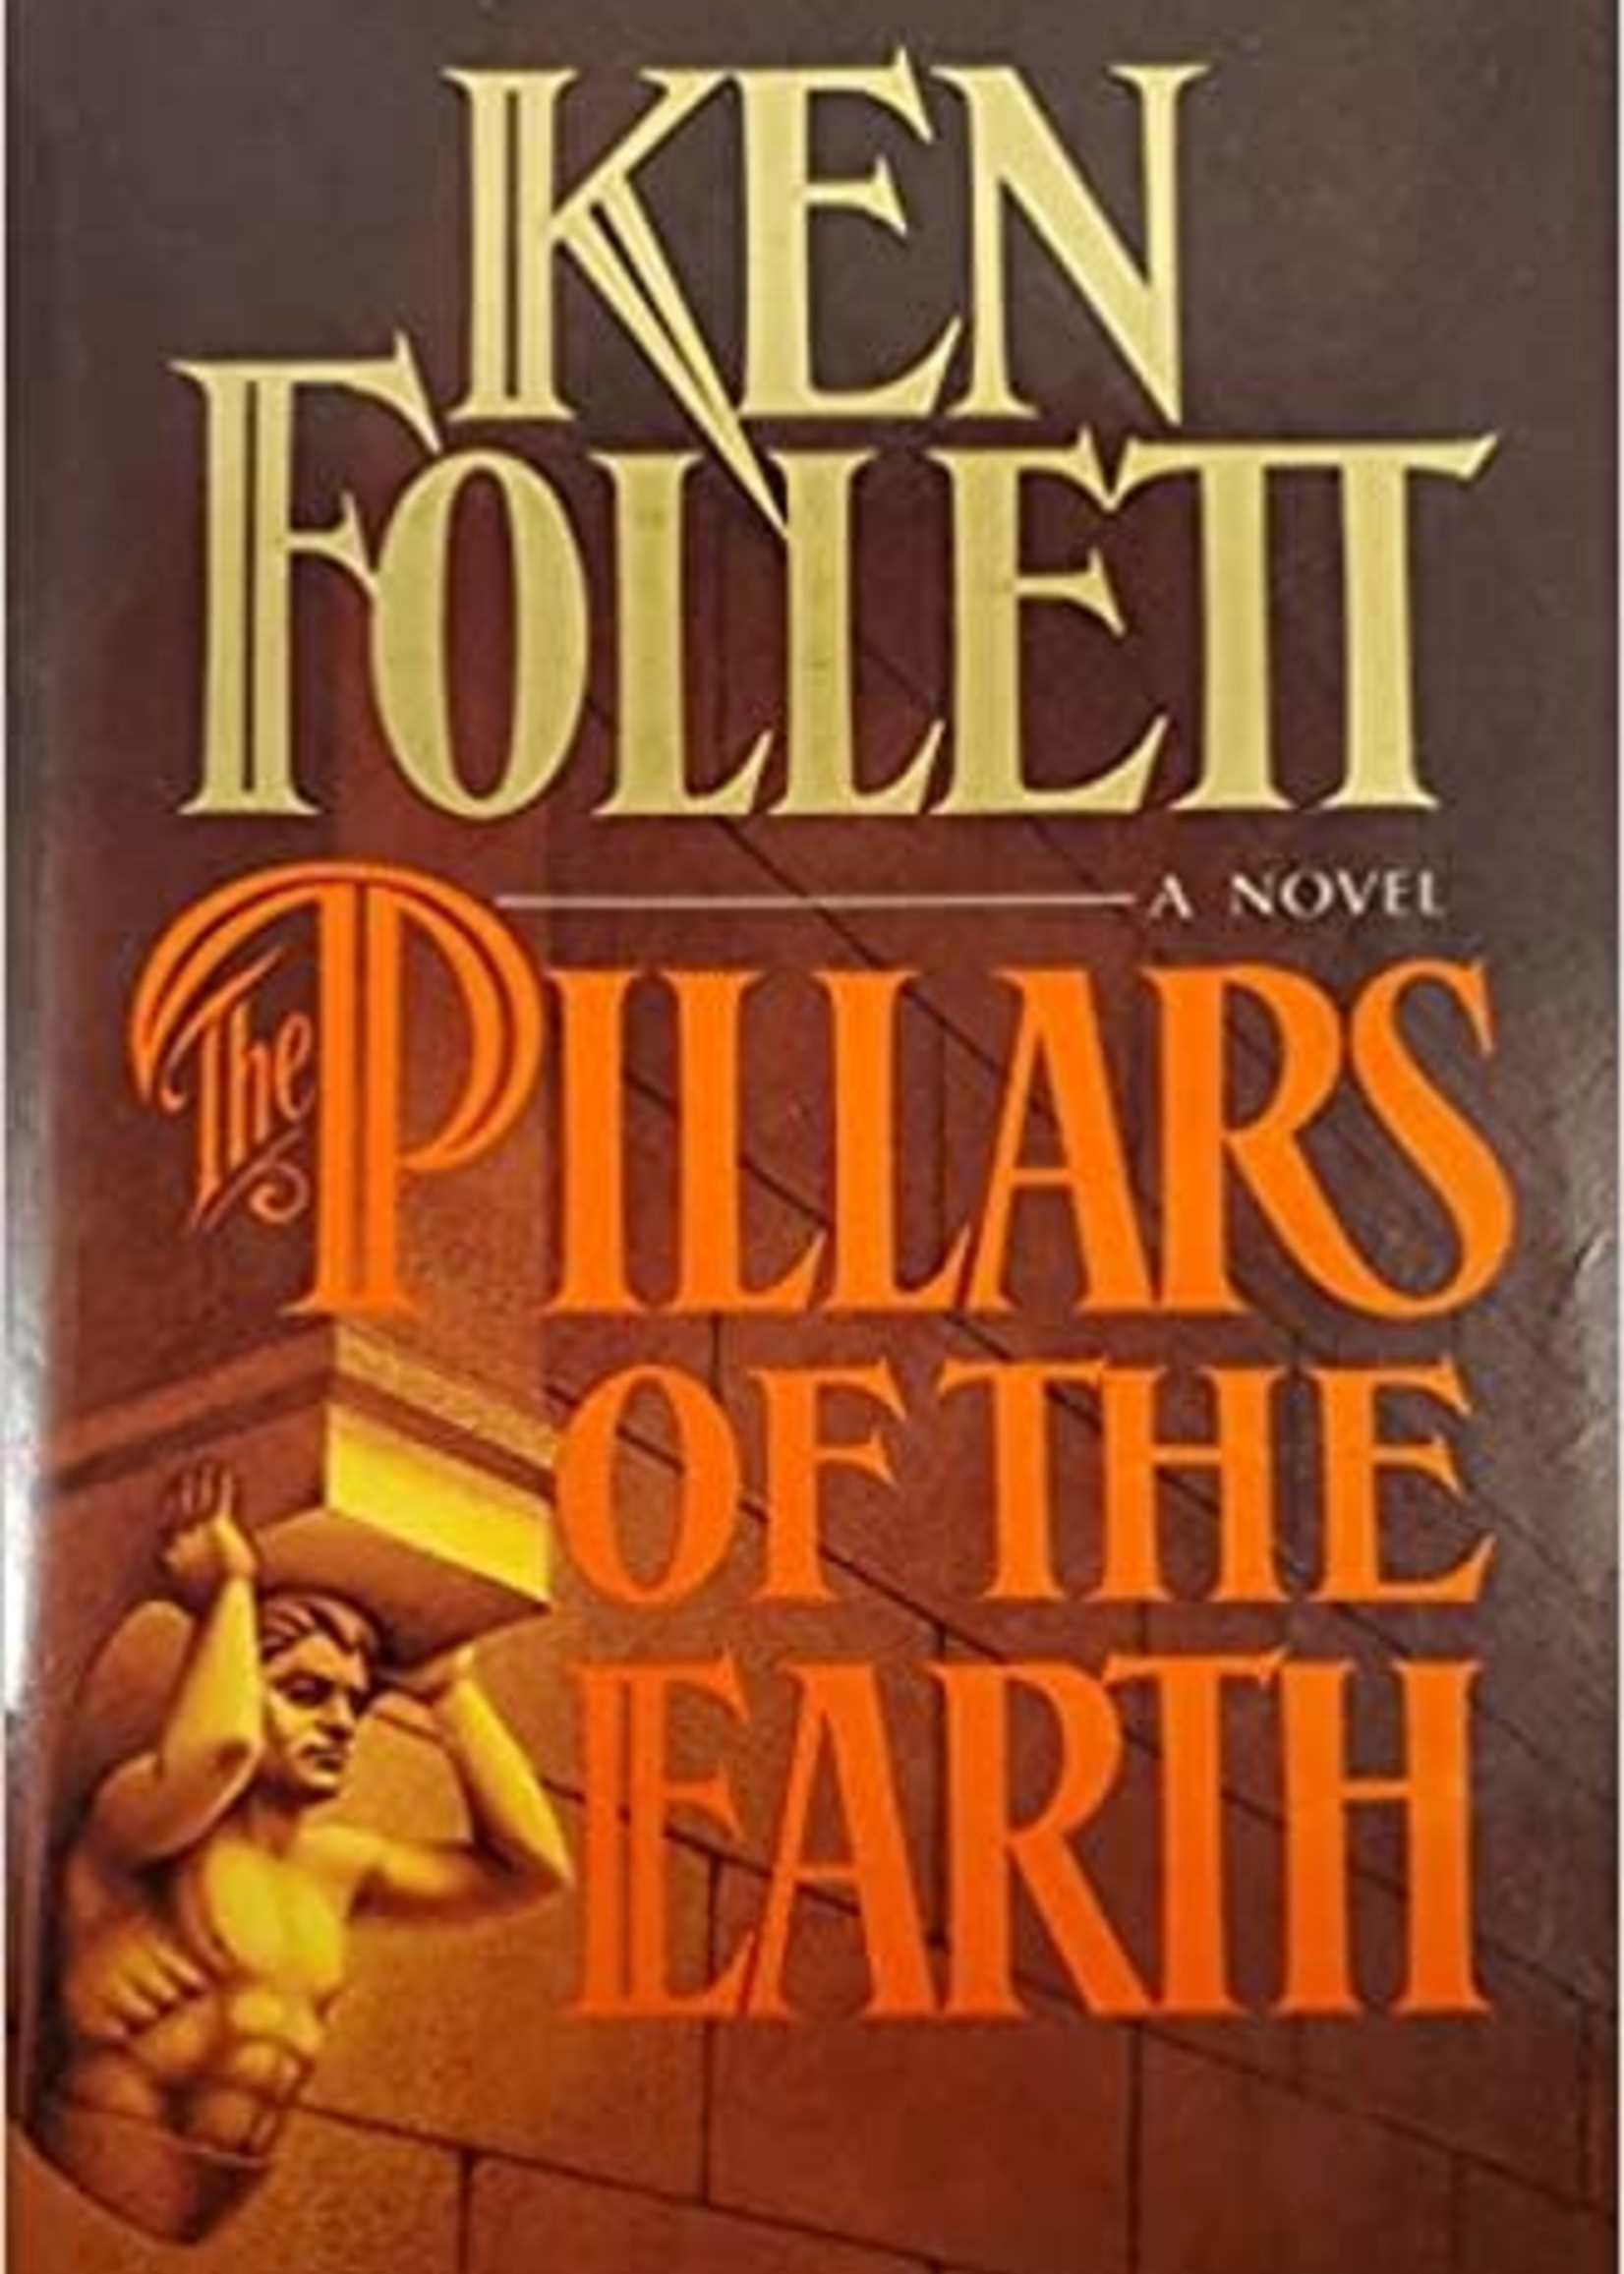 USED - The Pillars of the Earth by Ken Follett